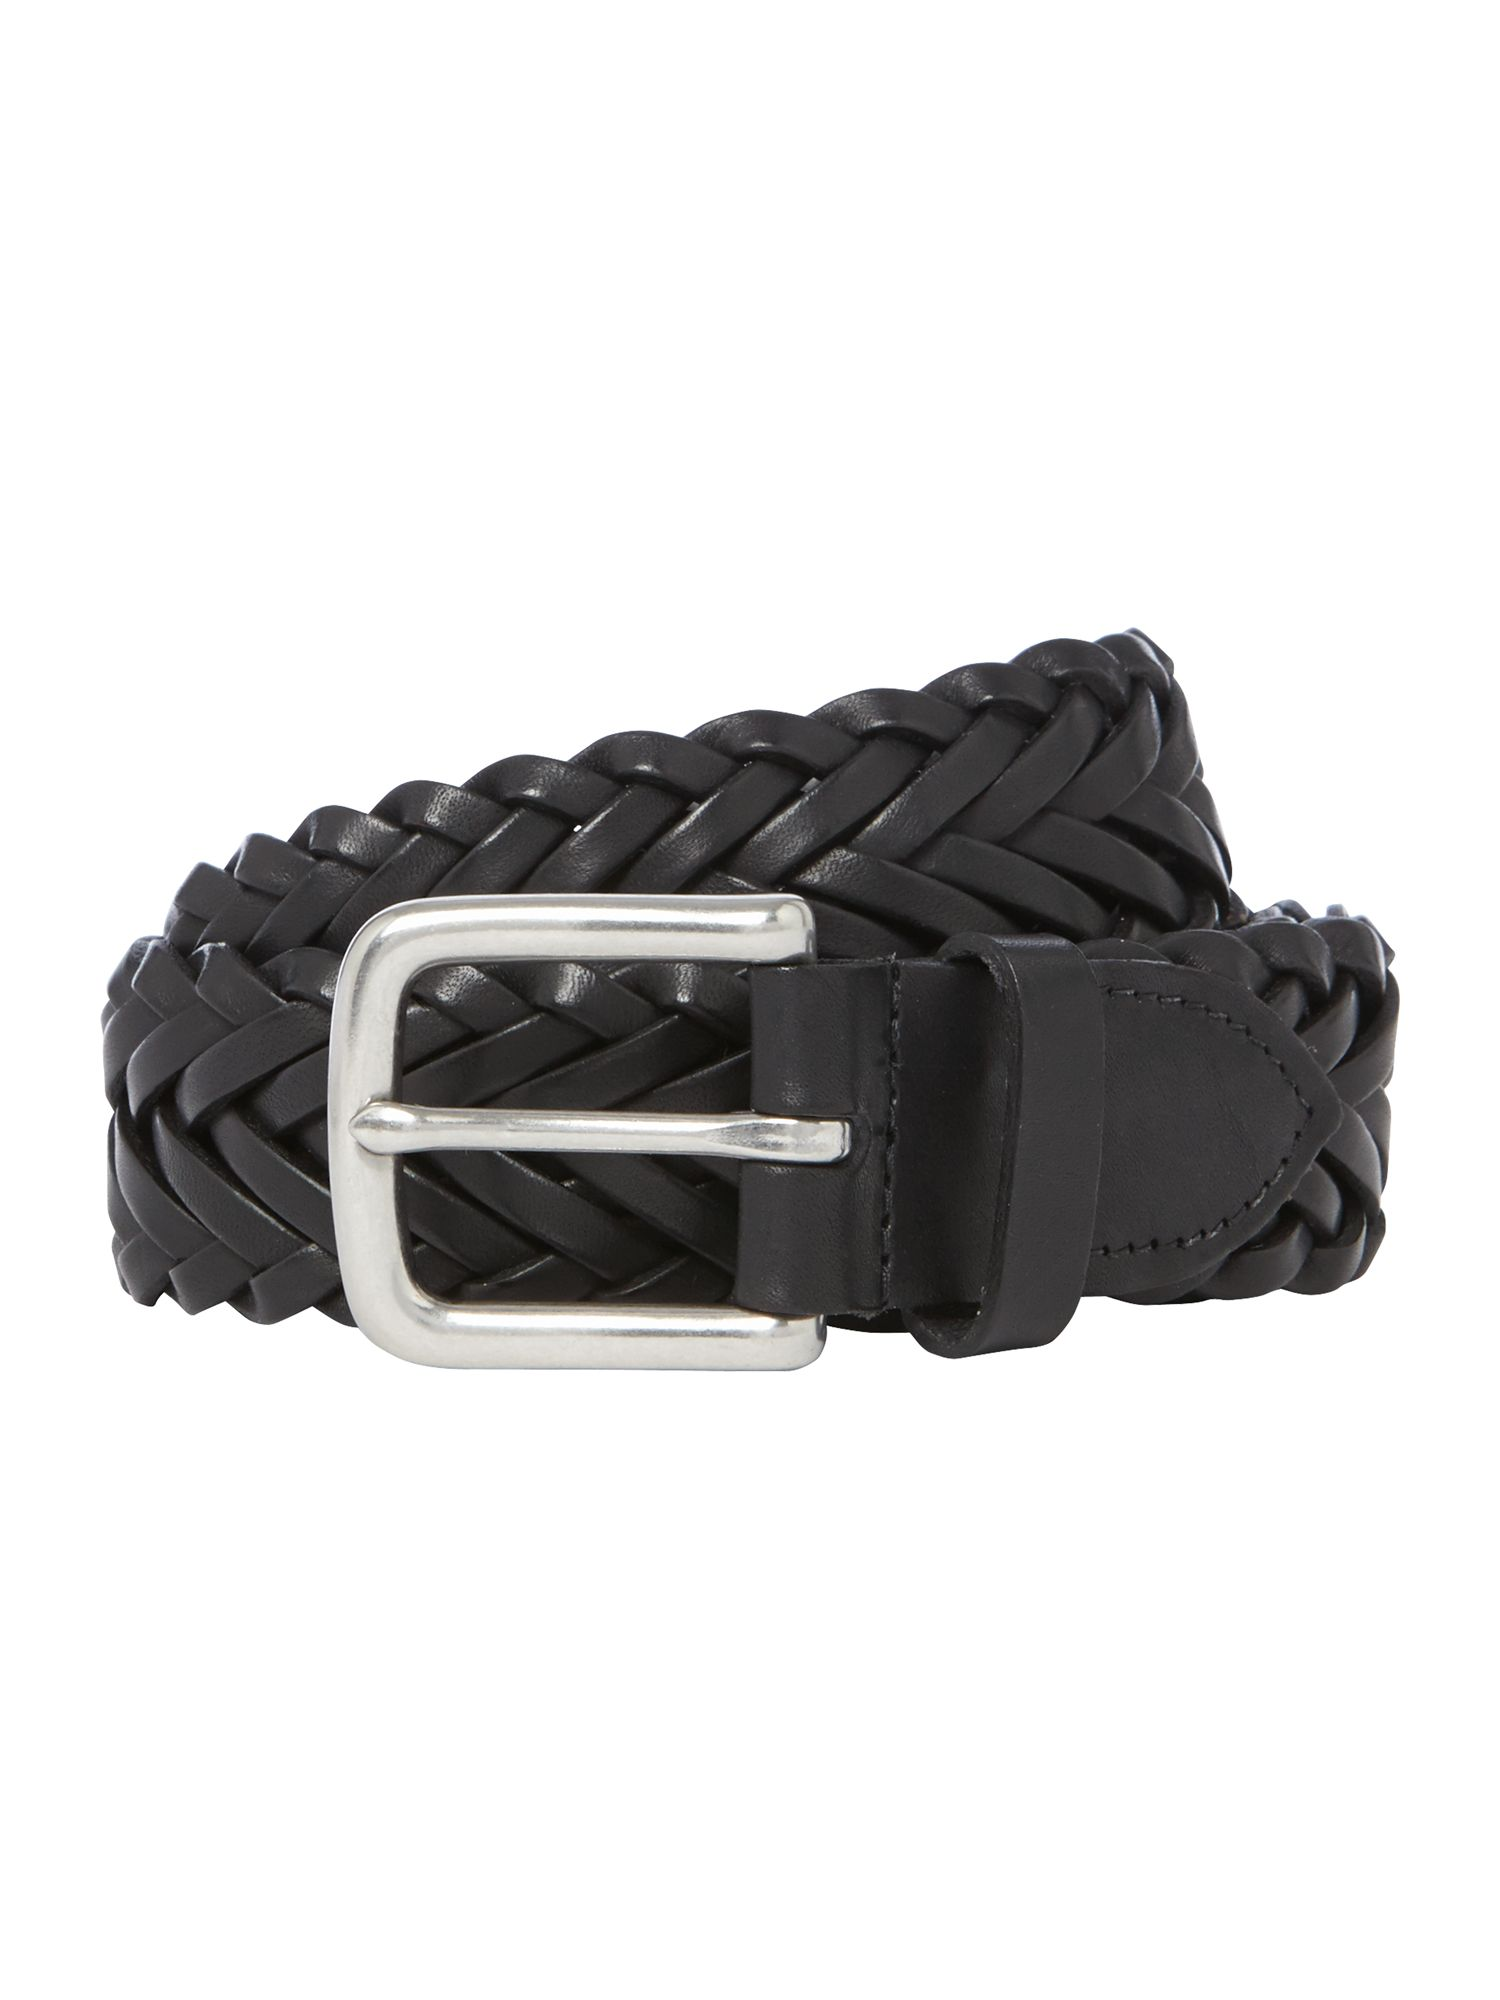 Casual woven leather belt